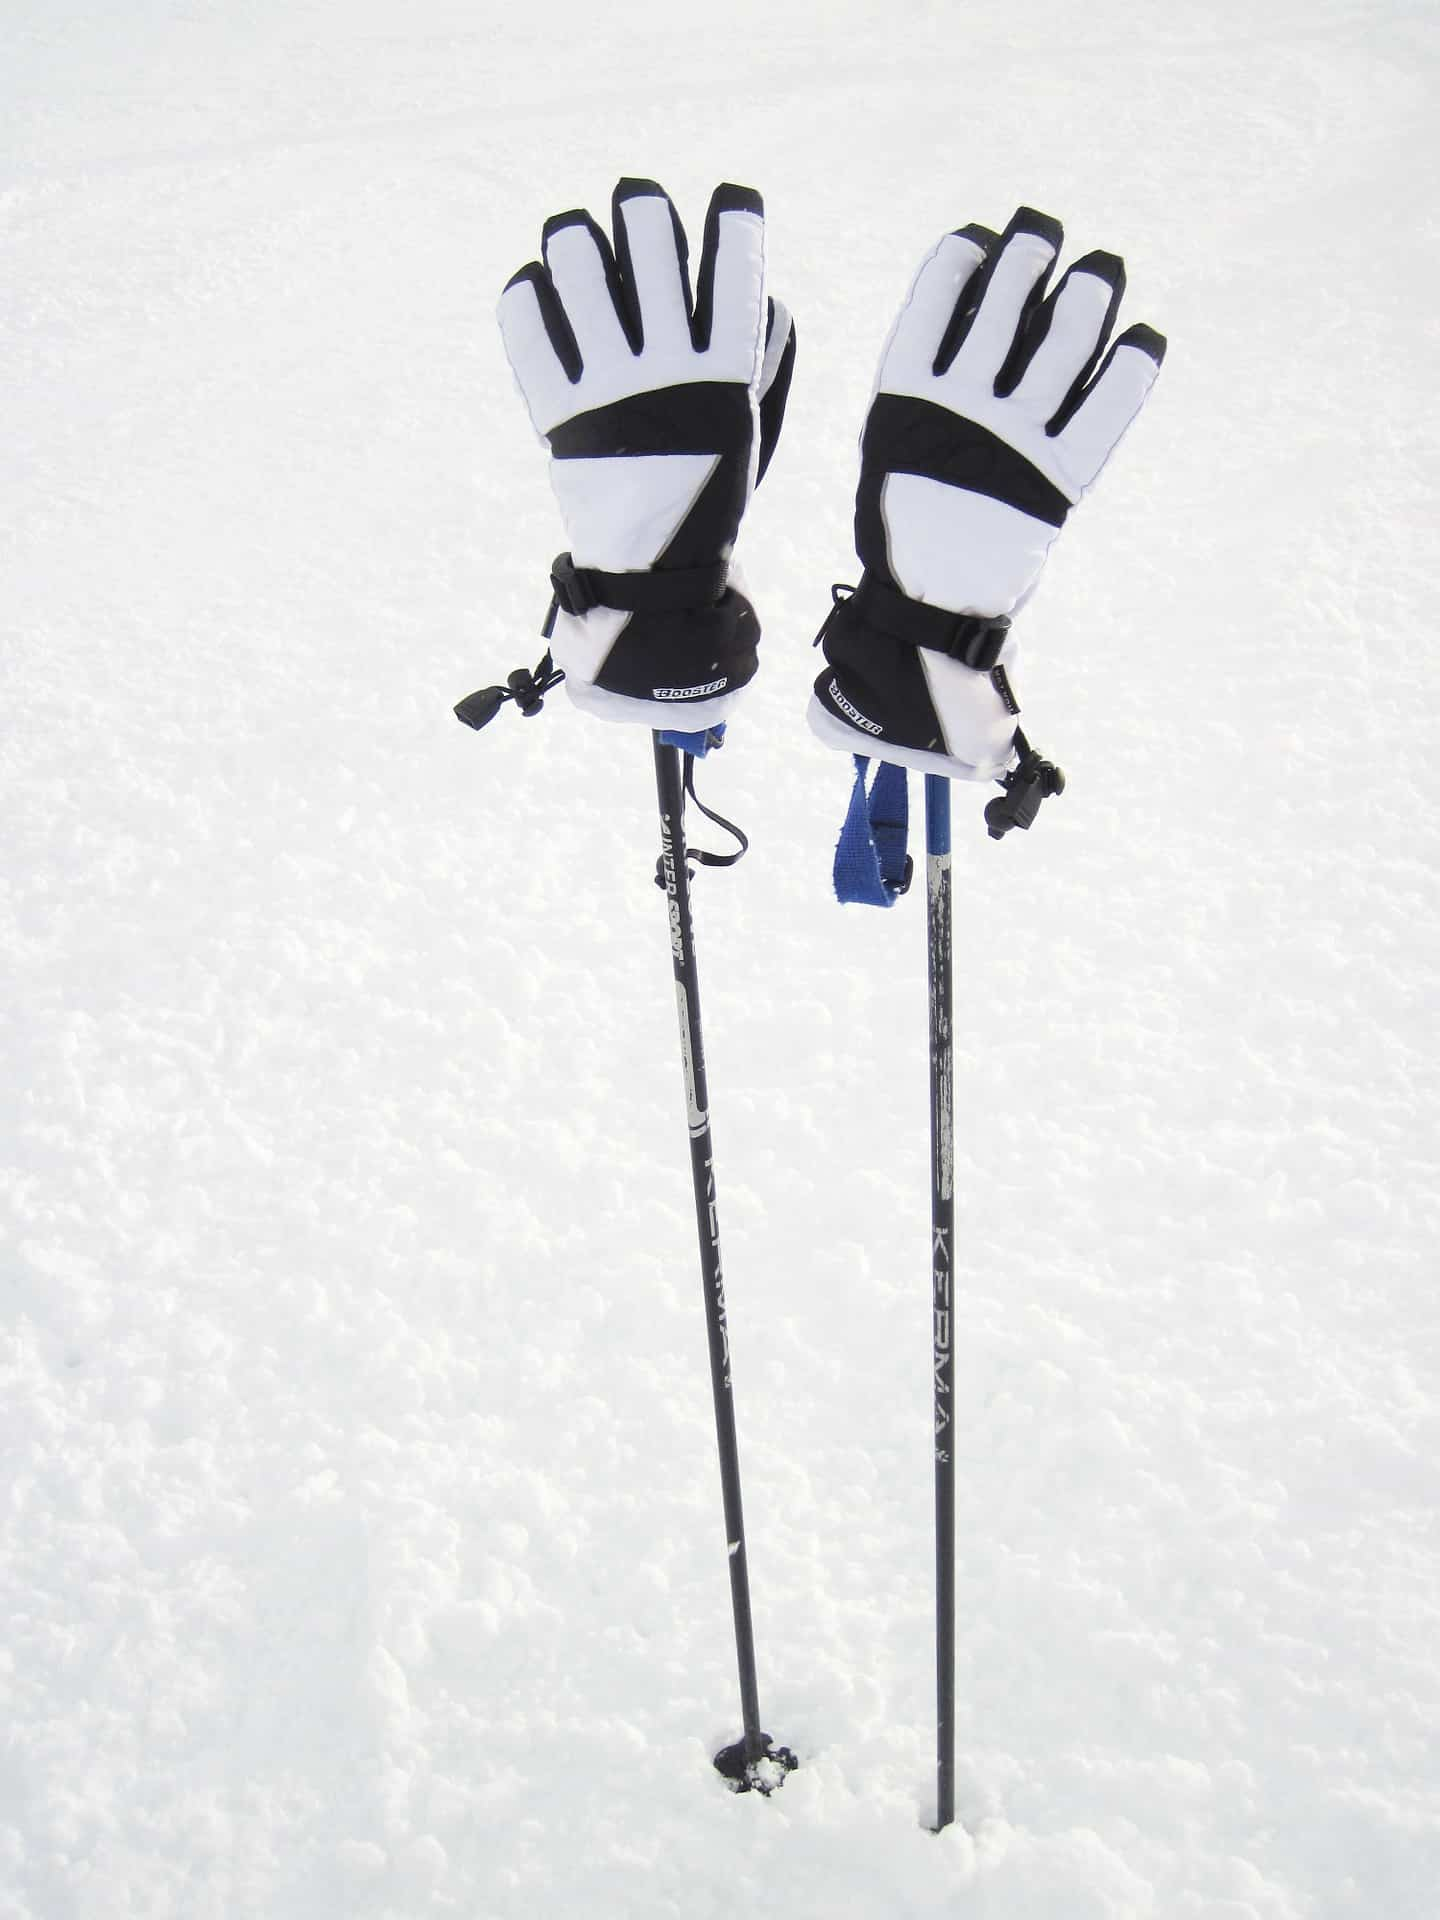 pair of white ski gloves and poles